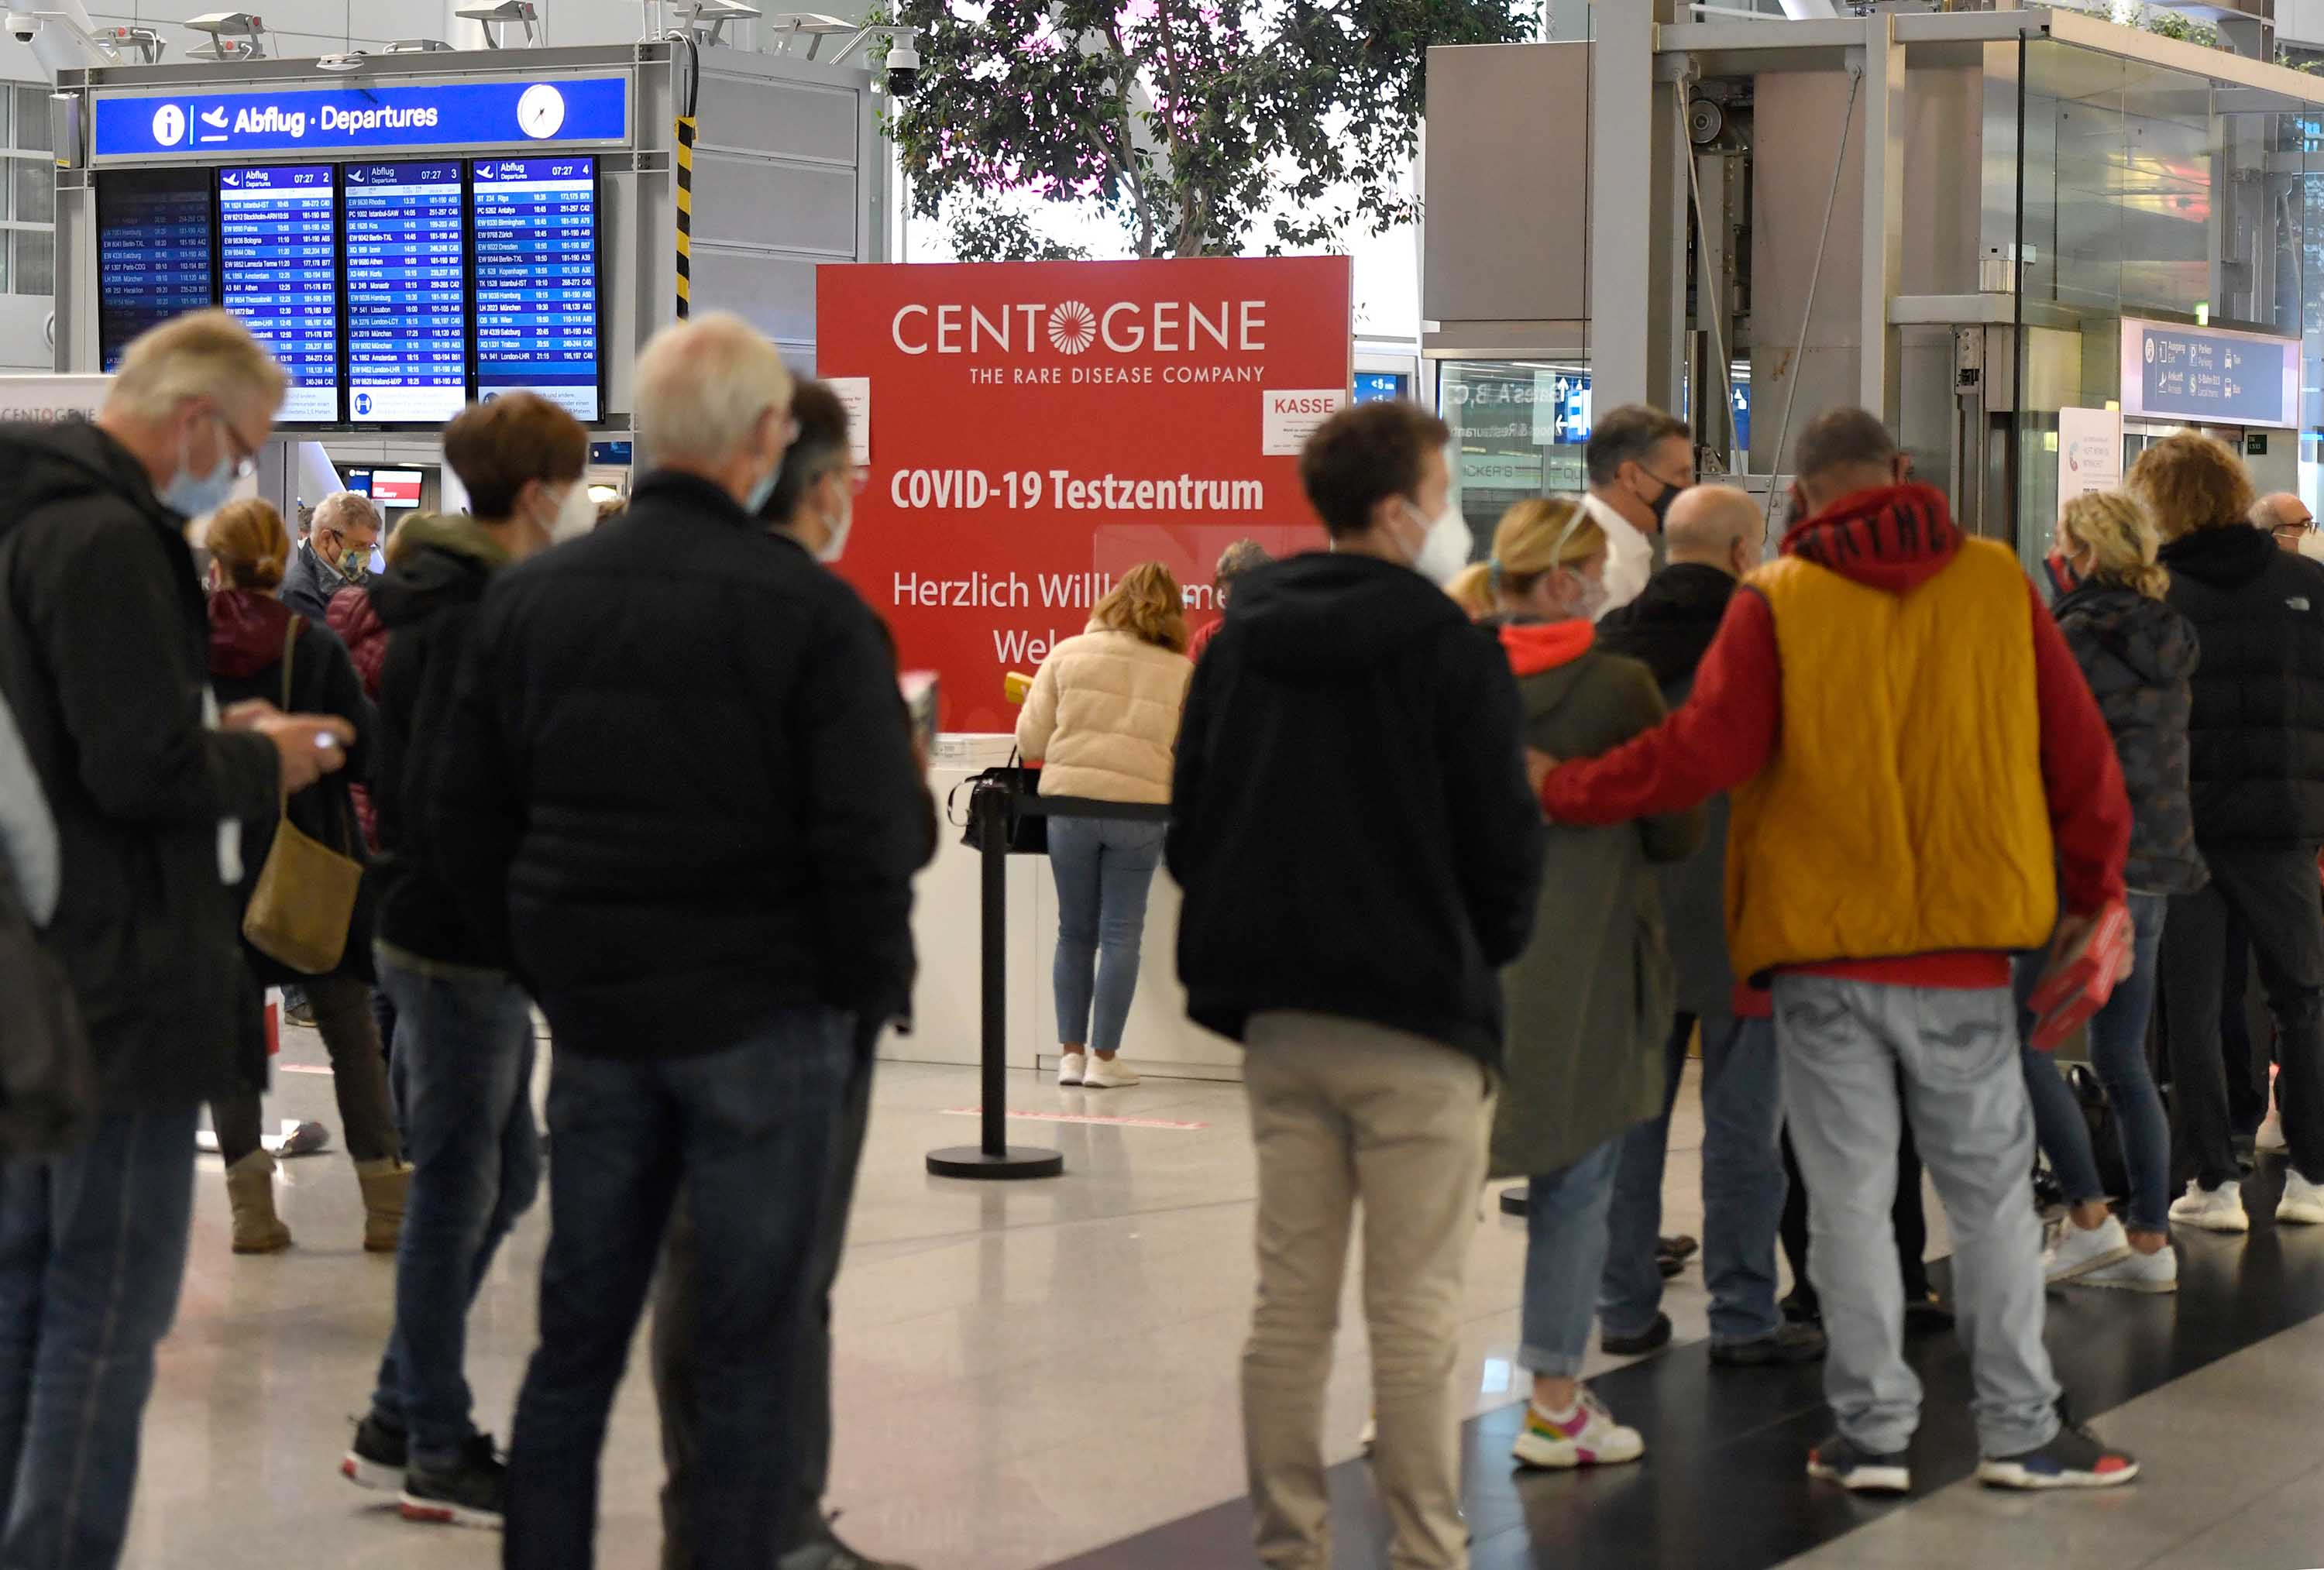 Travelers queue to take coronavirus tests at Duesseldorf airport in Germany on October 13.